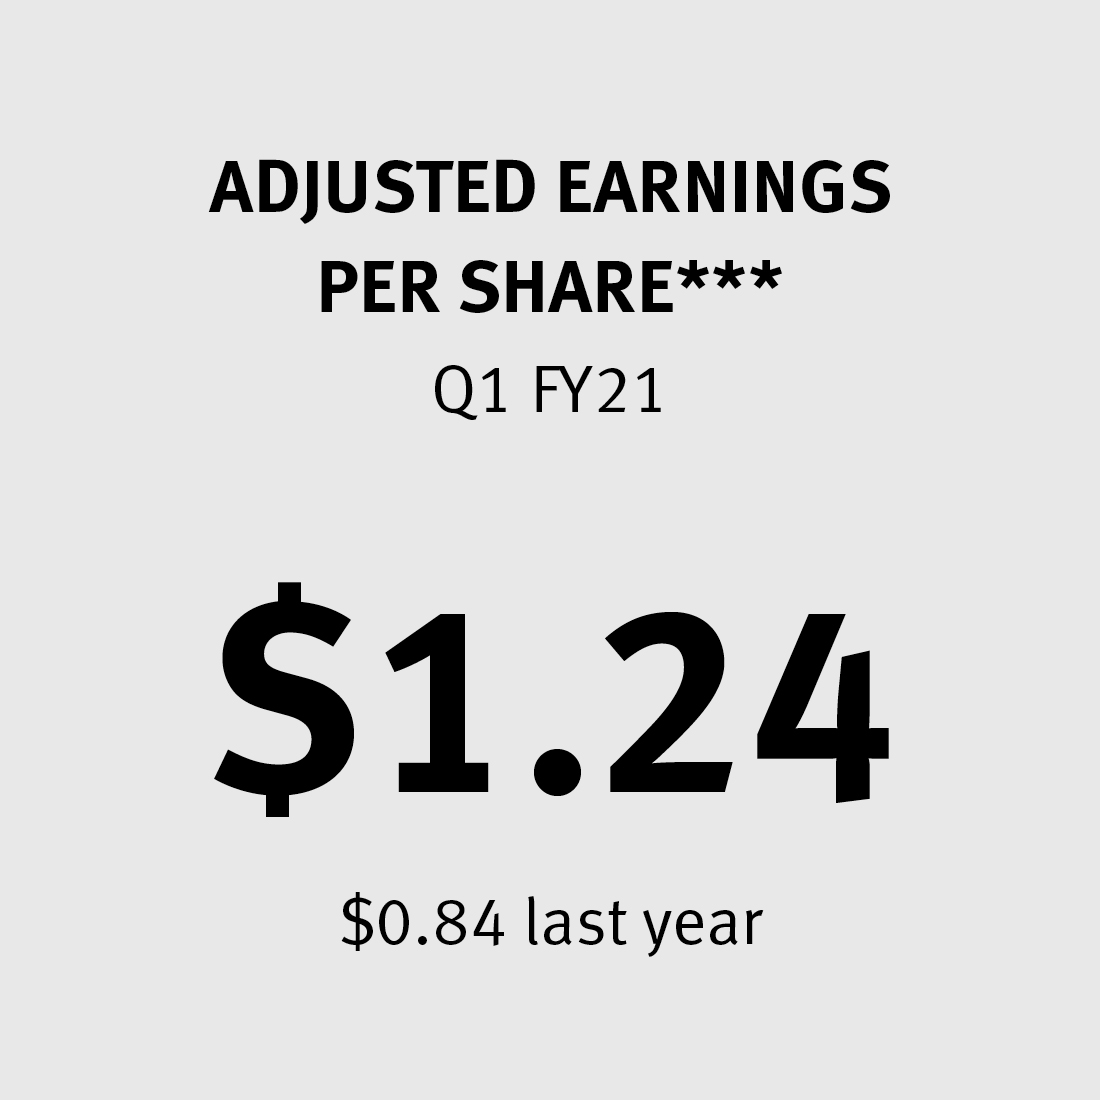 Adjusted Earnings per Share $1.24 ($0.84 last year)***